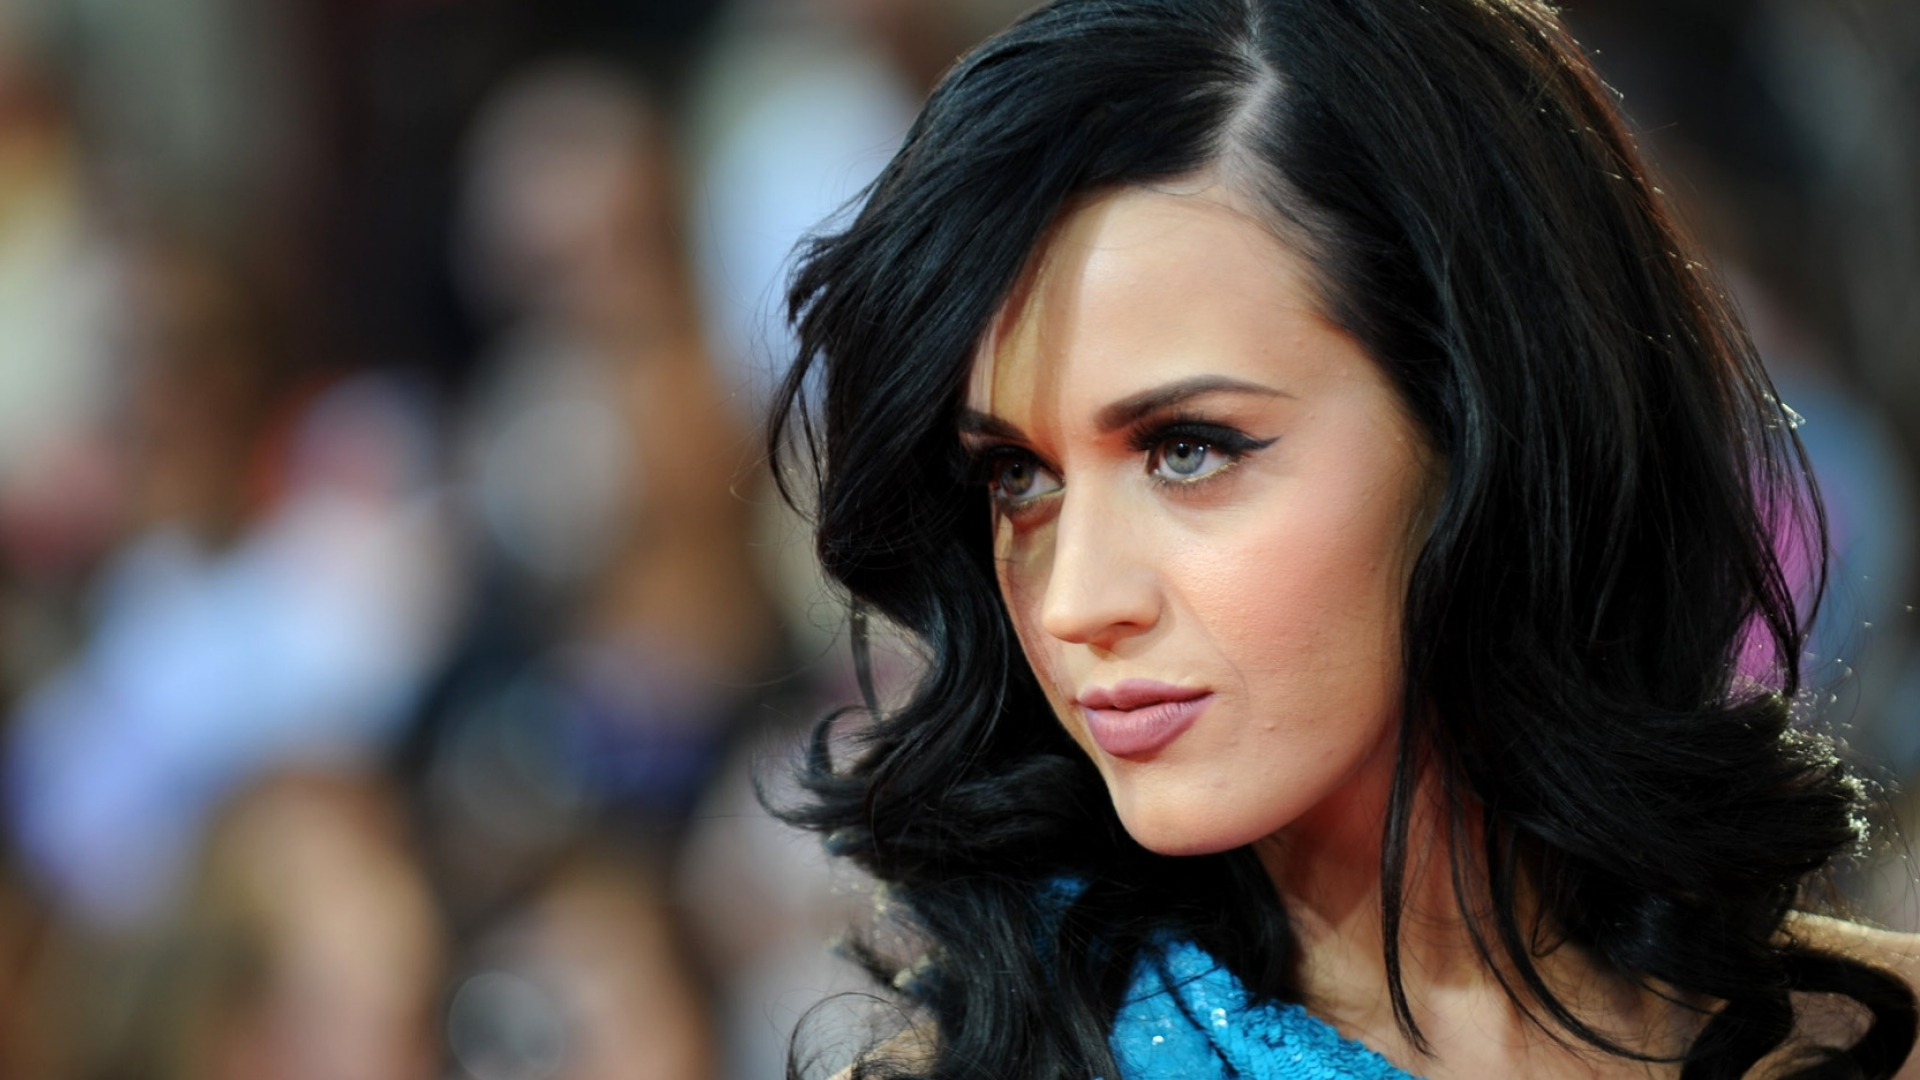 katy perry face wallpaper - hd wallpapers